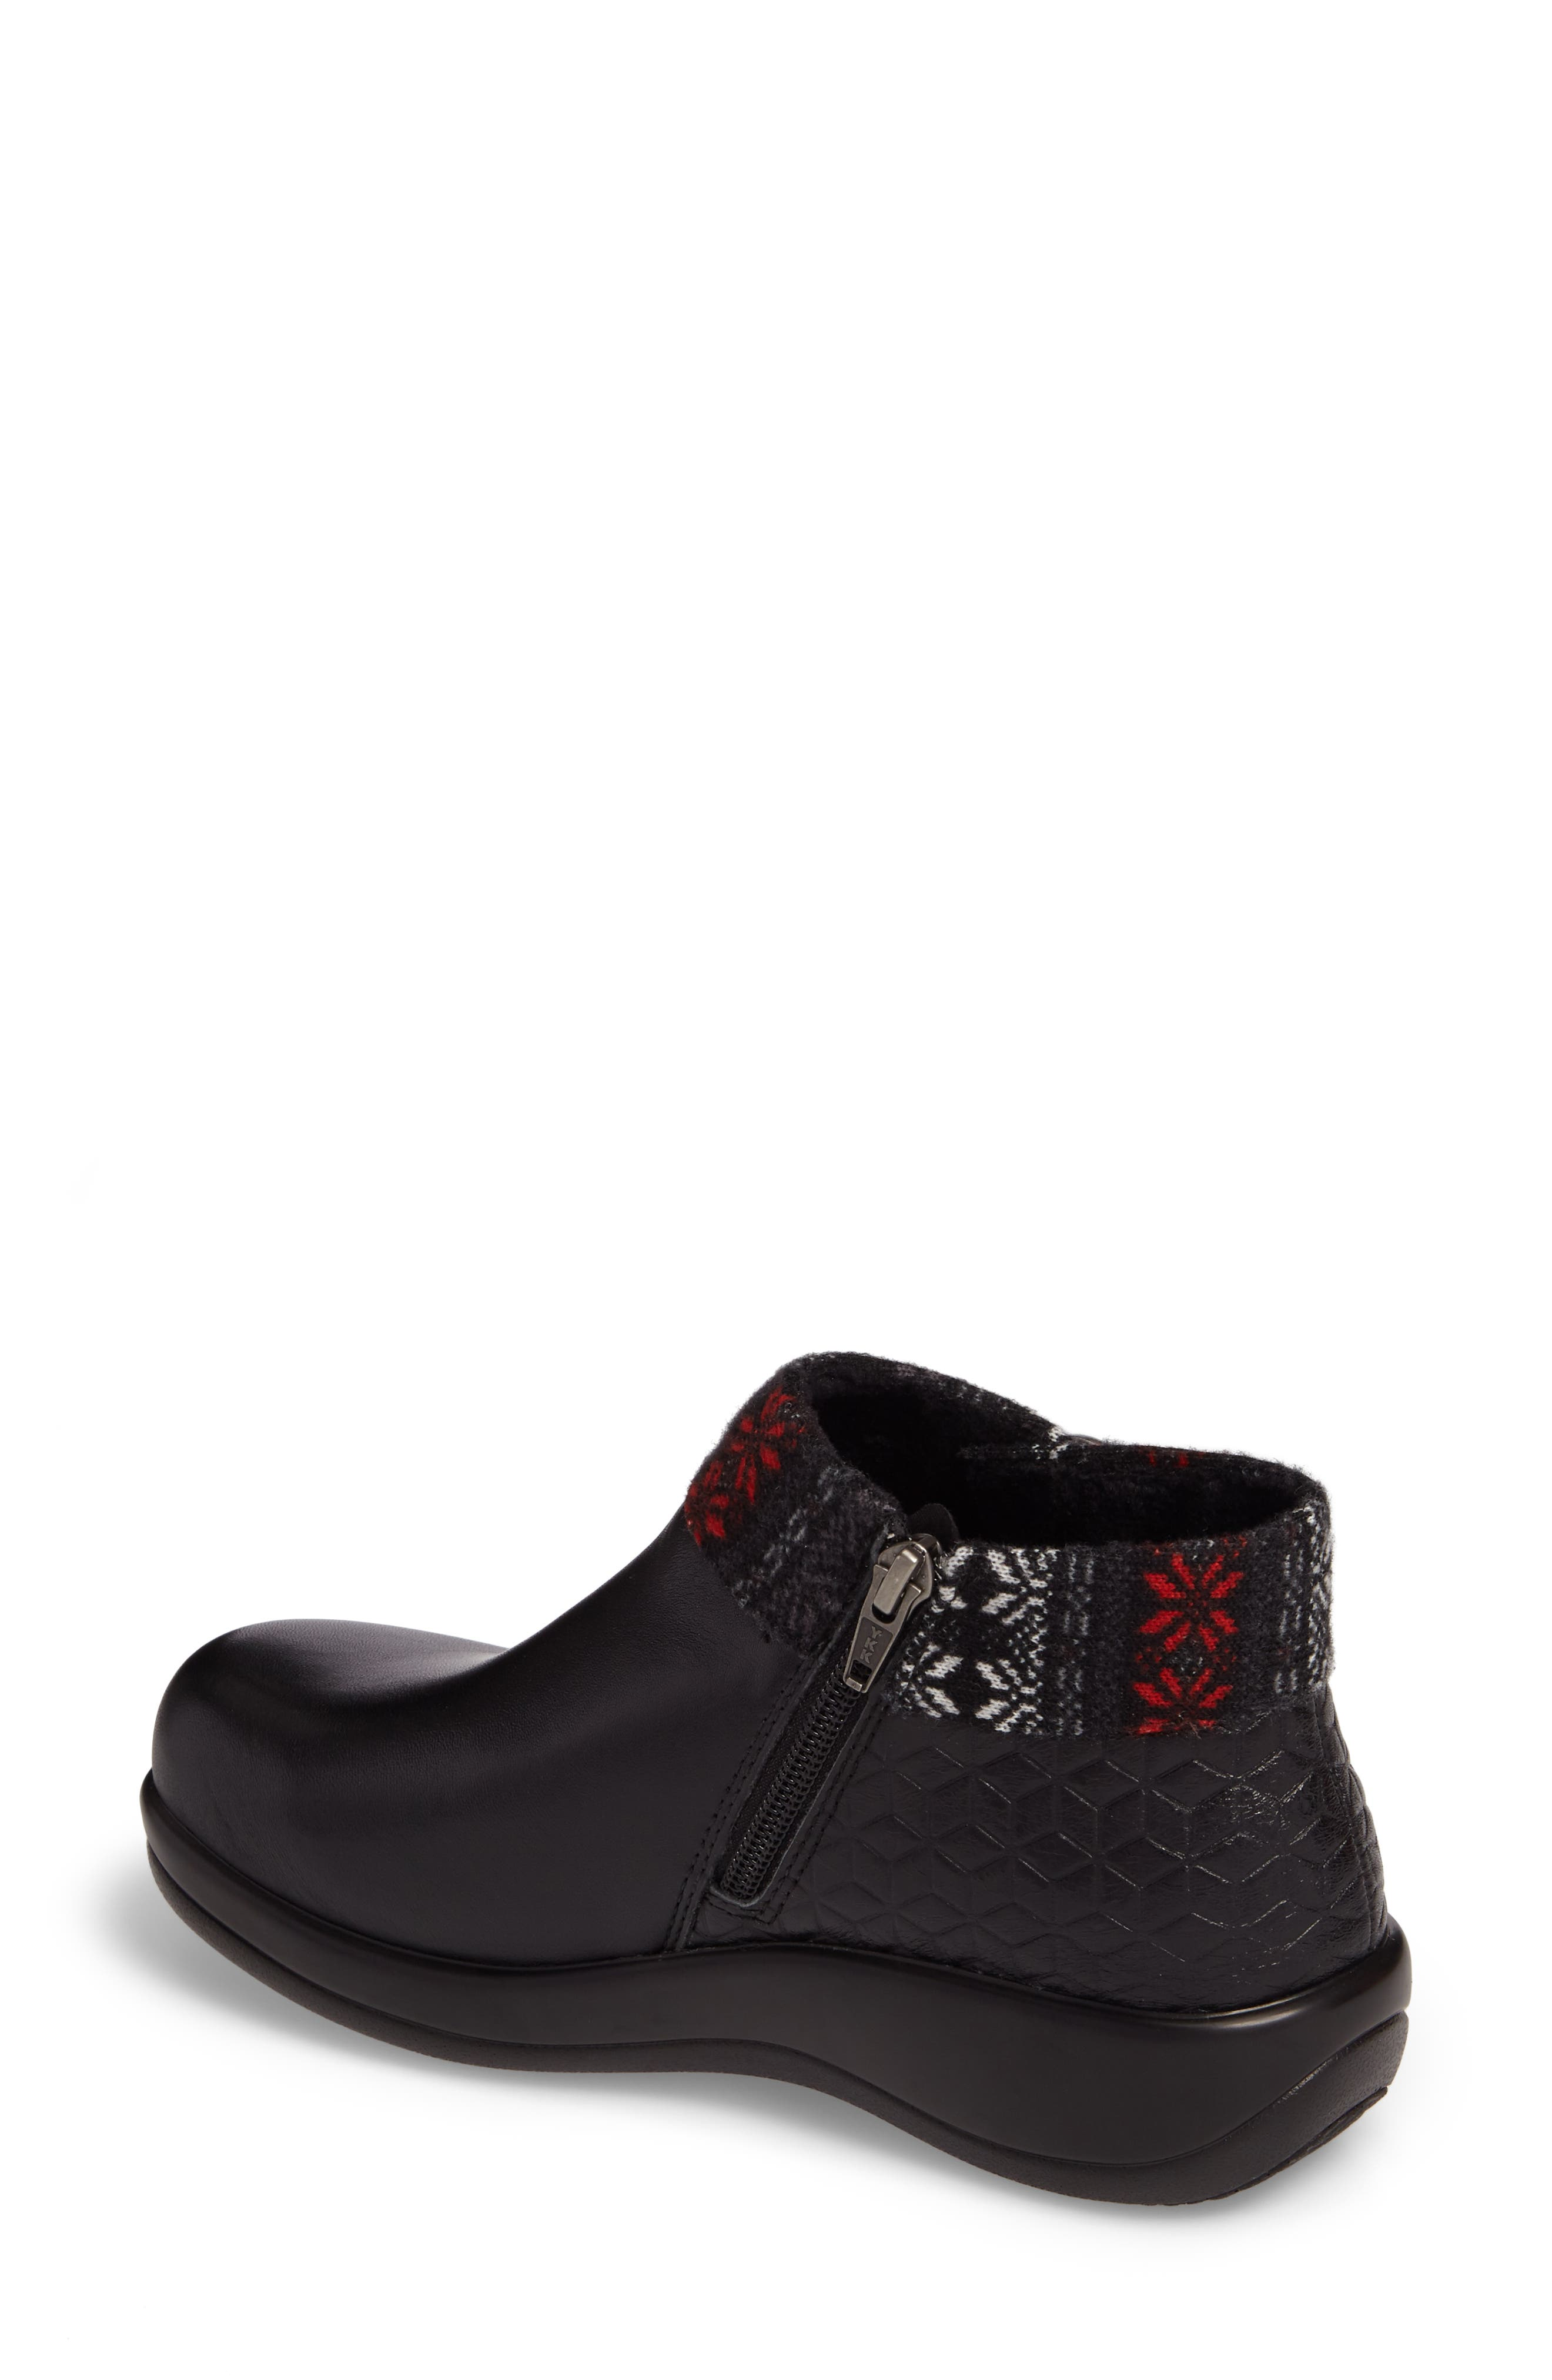 Sitka Knit Collar Bootie,                             Alternate thumbnail 2, color,                             002